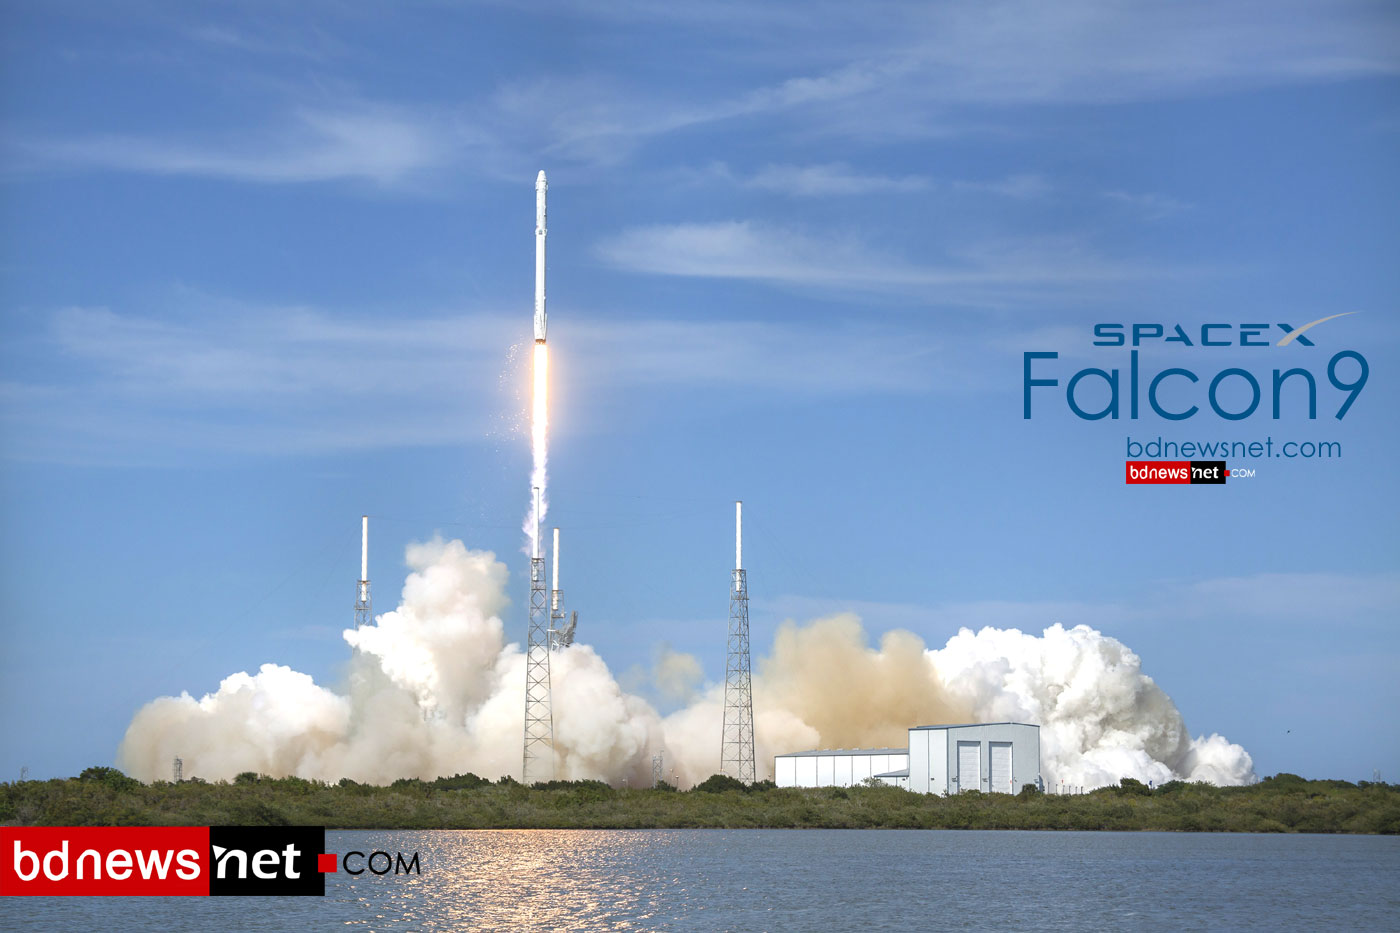 spacx-falcon9-bdnewsnet